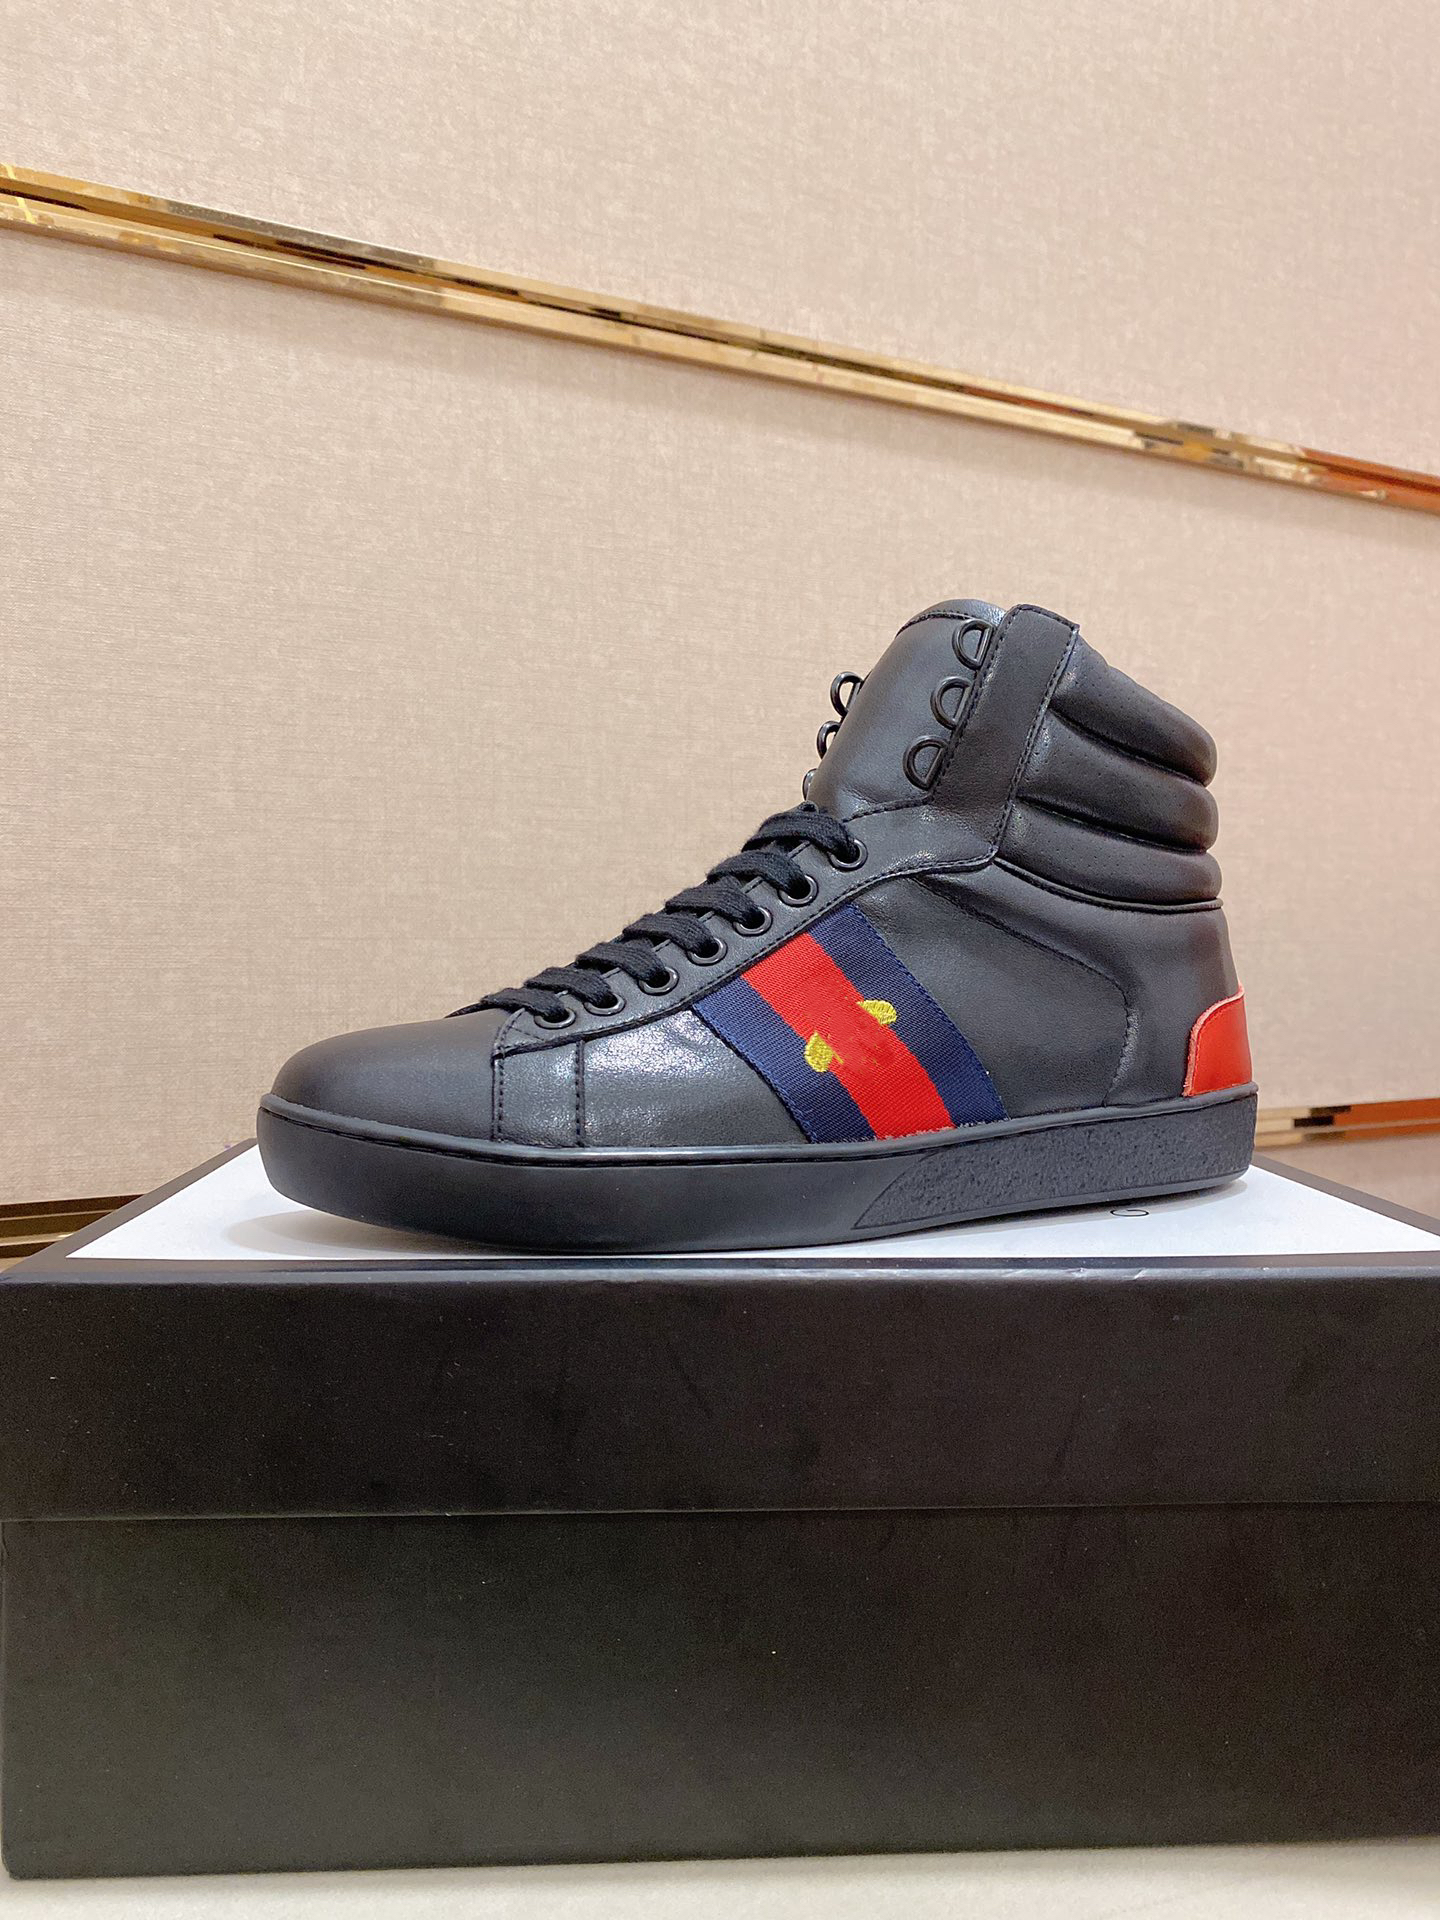 Italian tennis 1977 series high-top men's and women's basketball shoes printed red or black twill casual lace-up Little bee shoess outdoor fashion sports Luxury shoeses